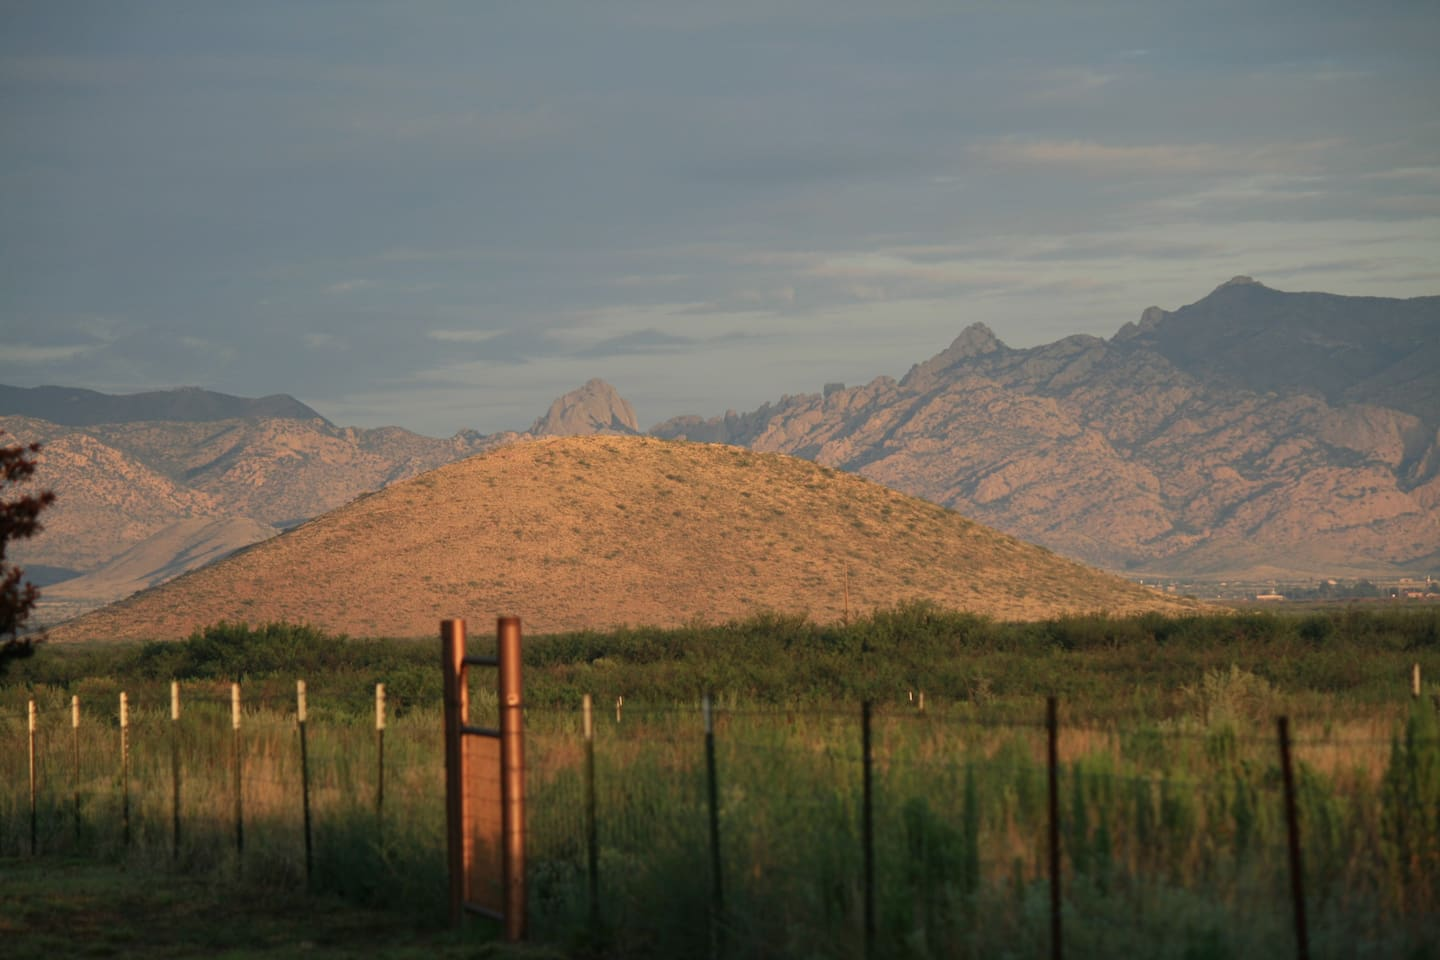 ~Views of 2 National Parks from Ranch. The Cochise Stronghold & The Chiricahua National Monument